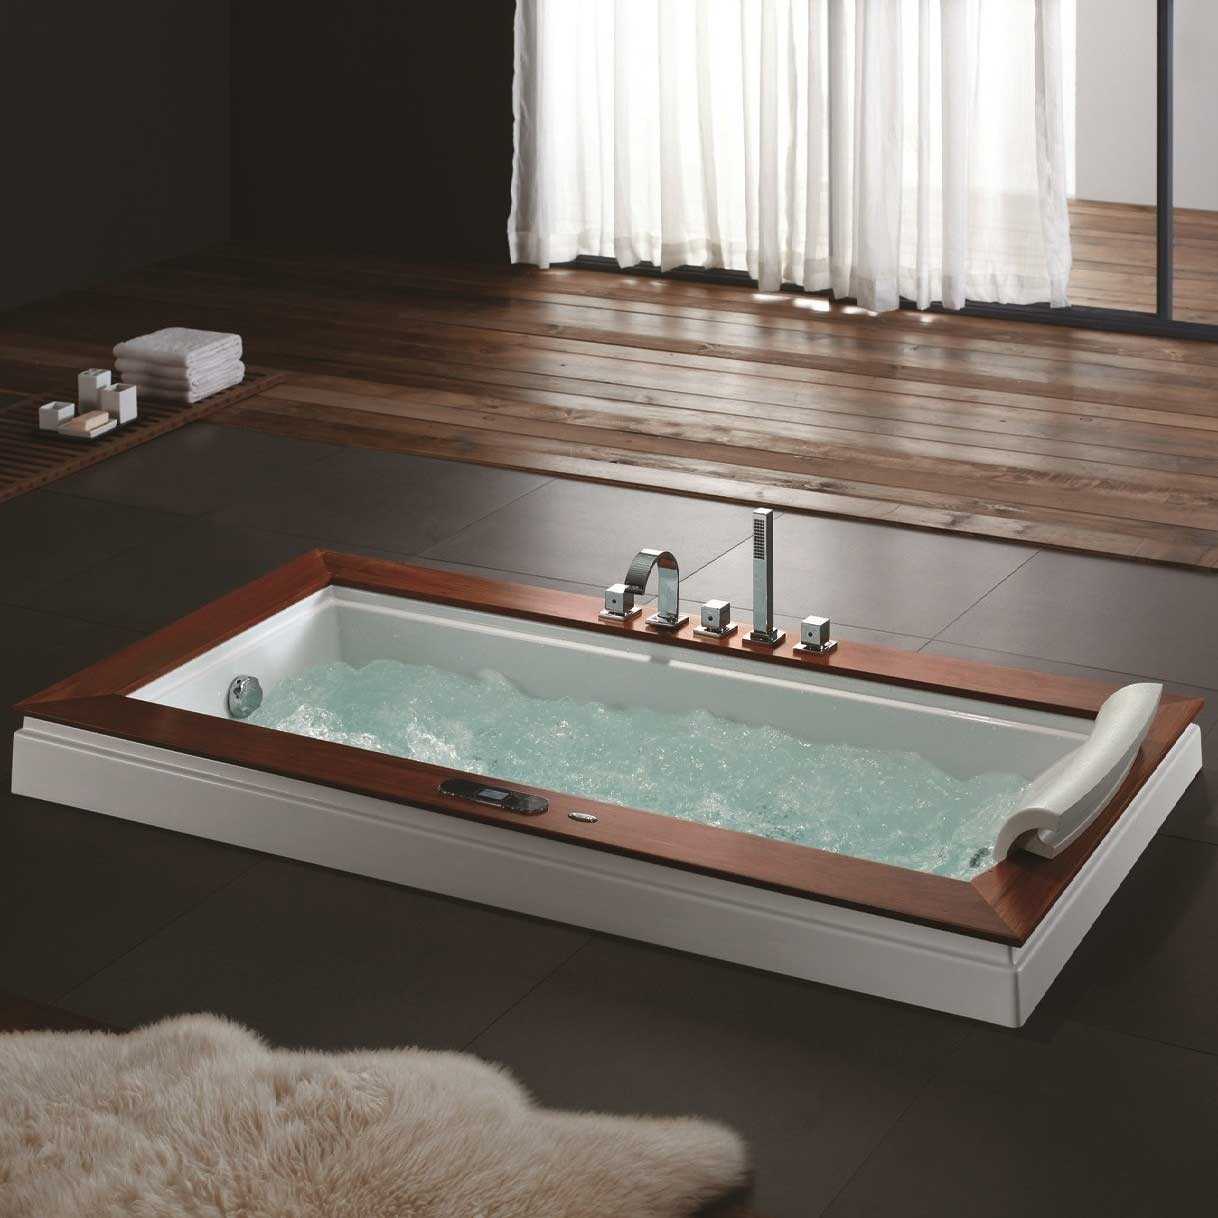 Santa Barbara Luxury Massage Bathtub